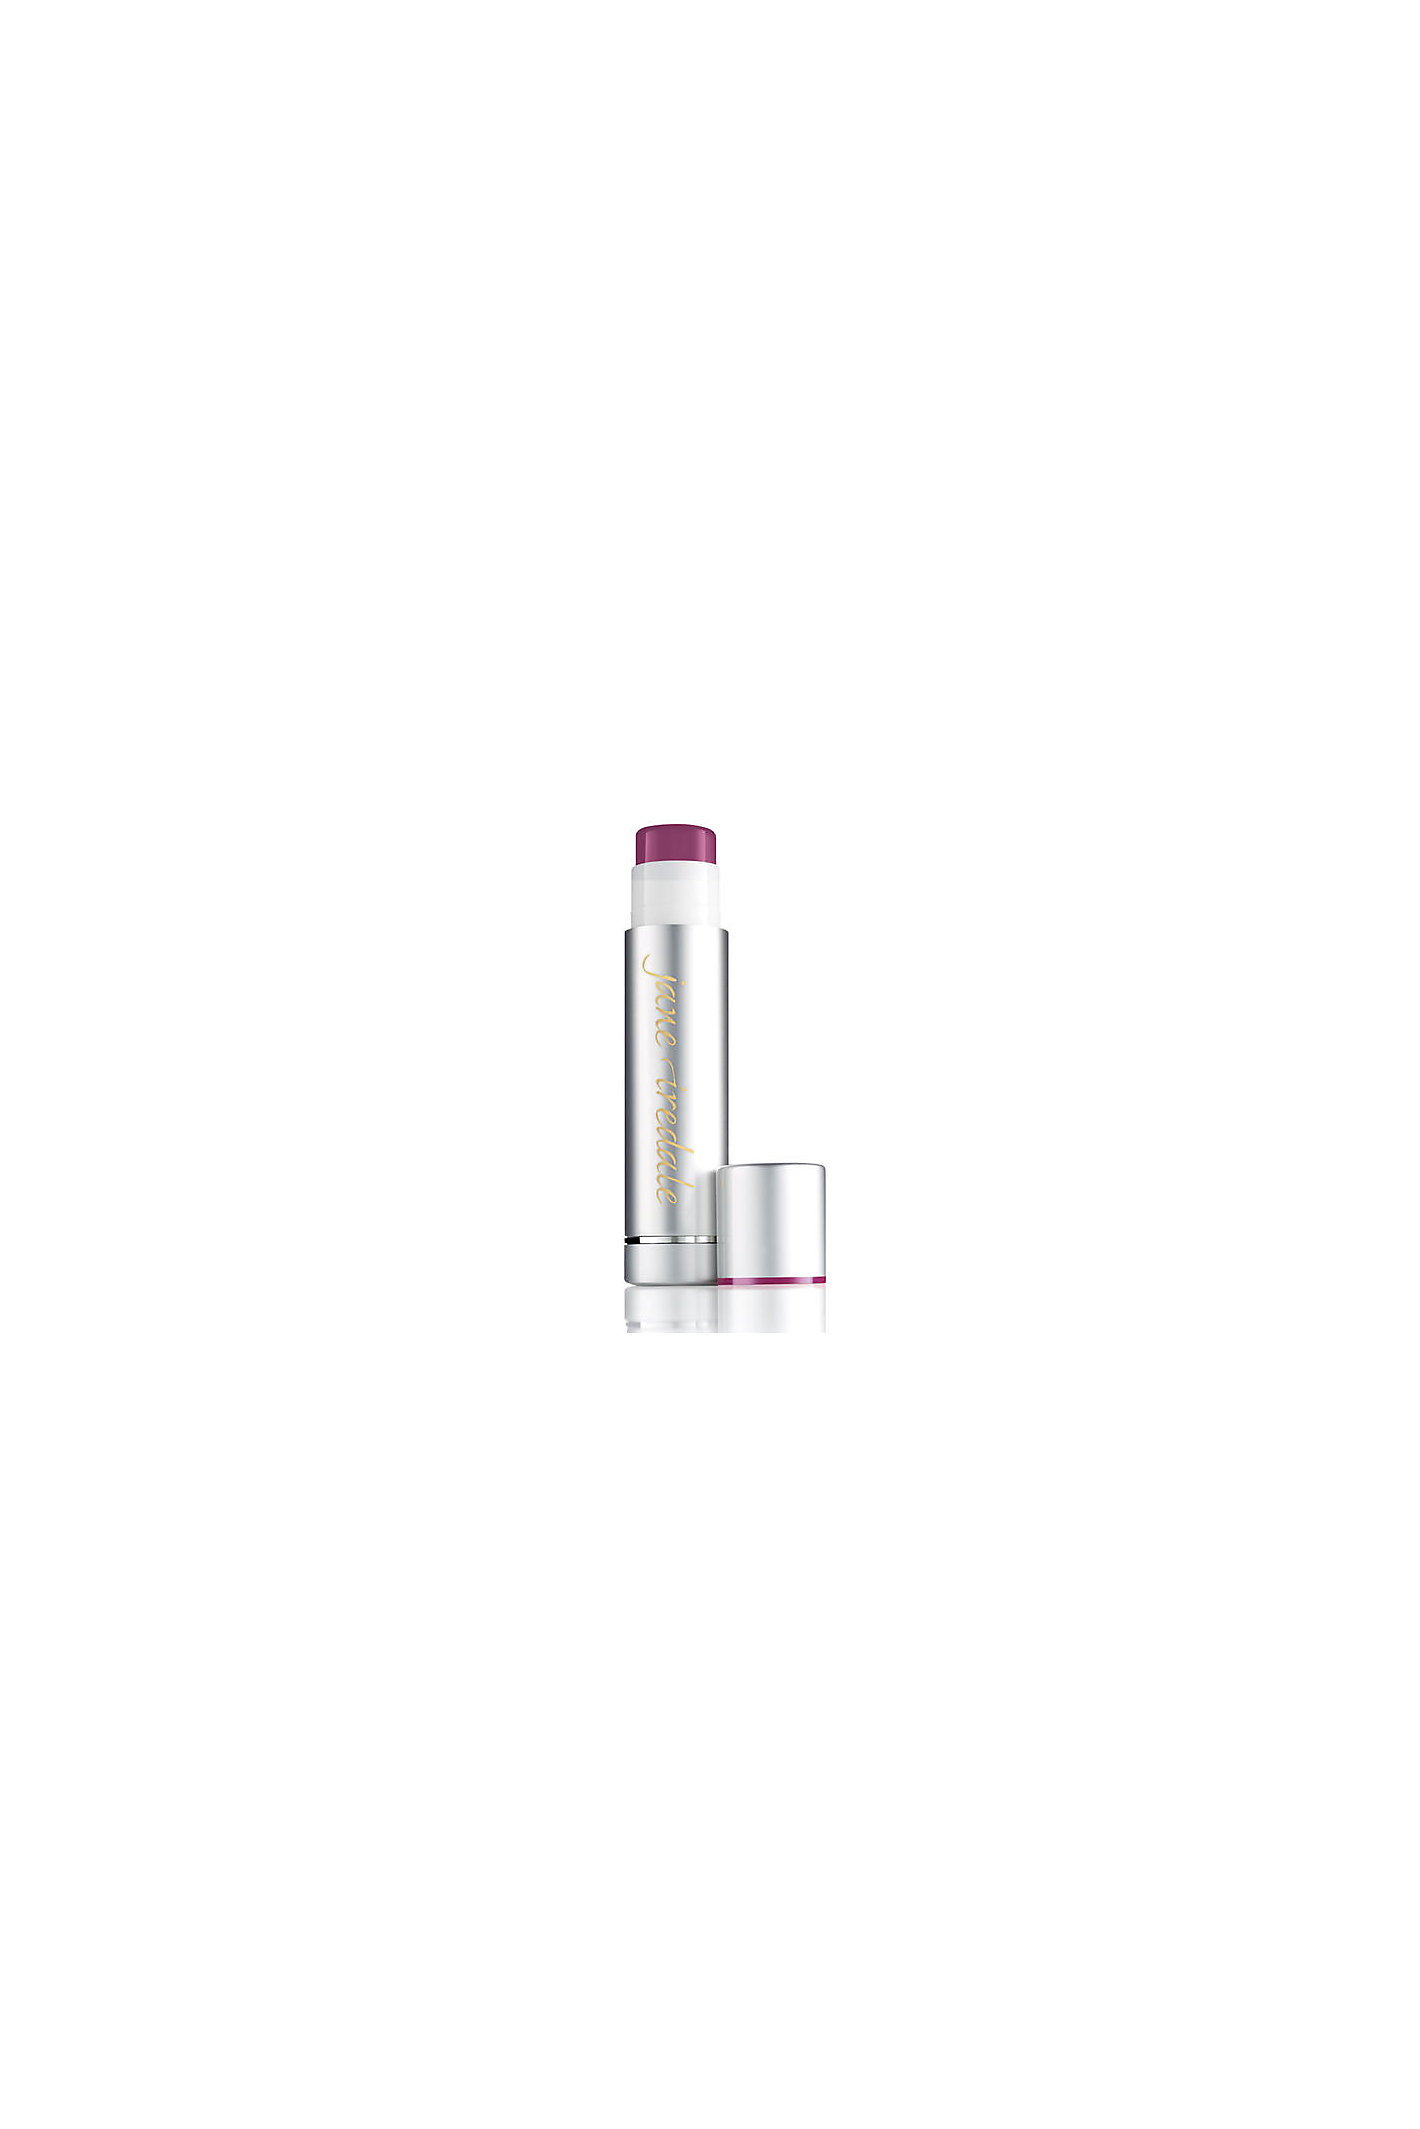 Tinted Lip Drink